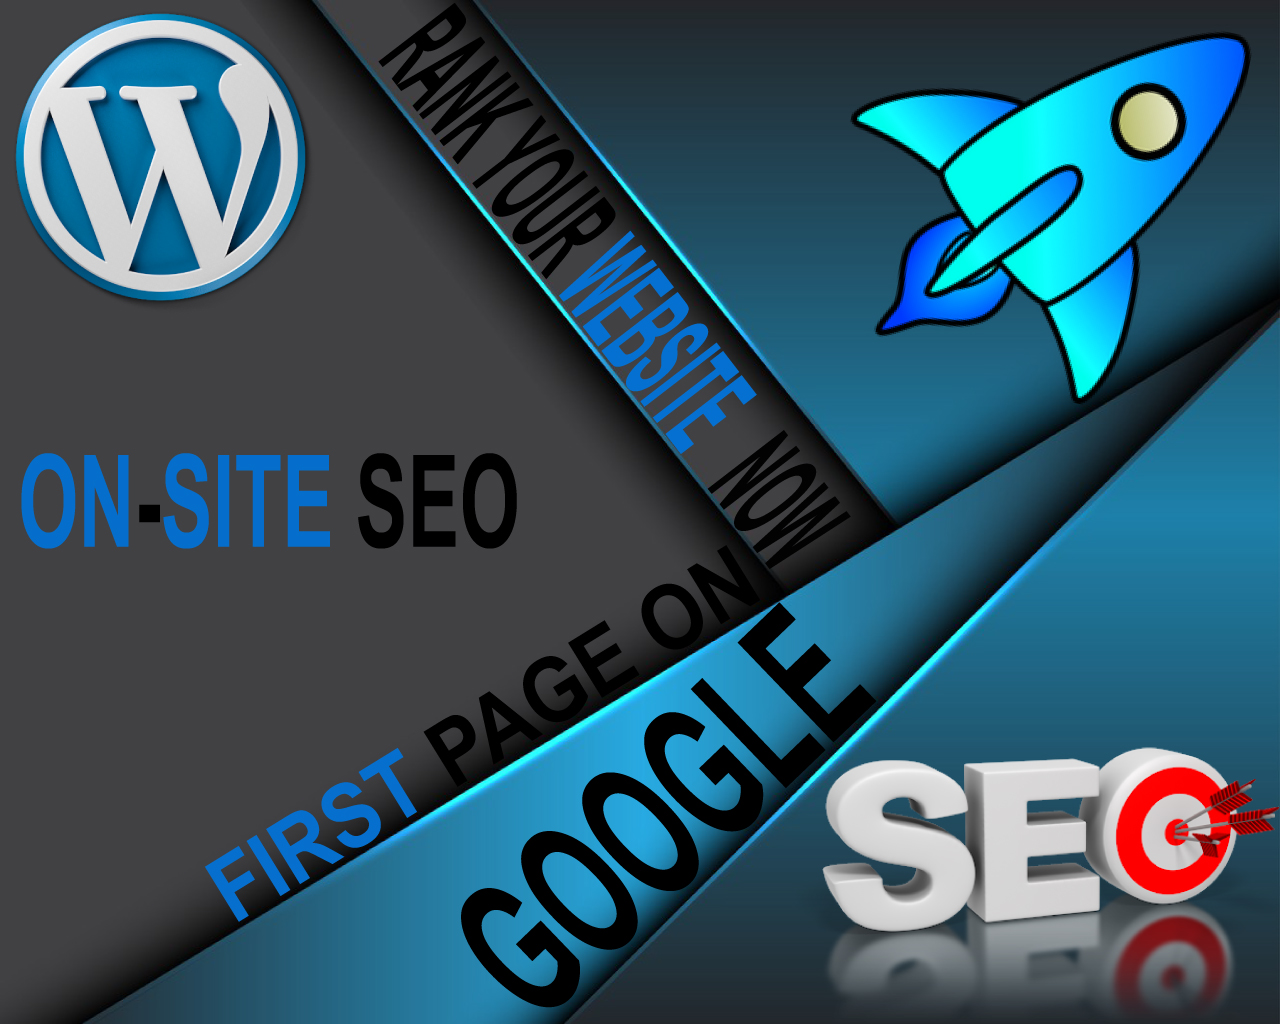 Complete on site seo optimization for your website